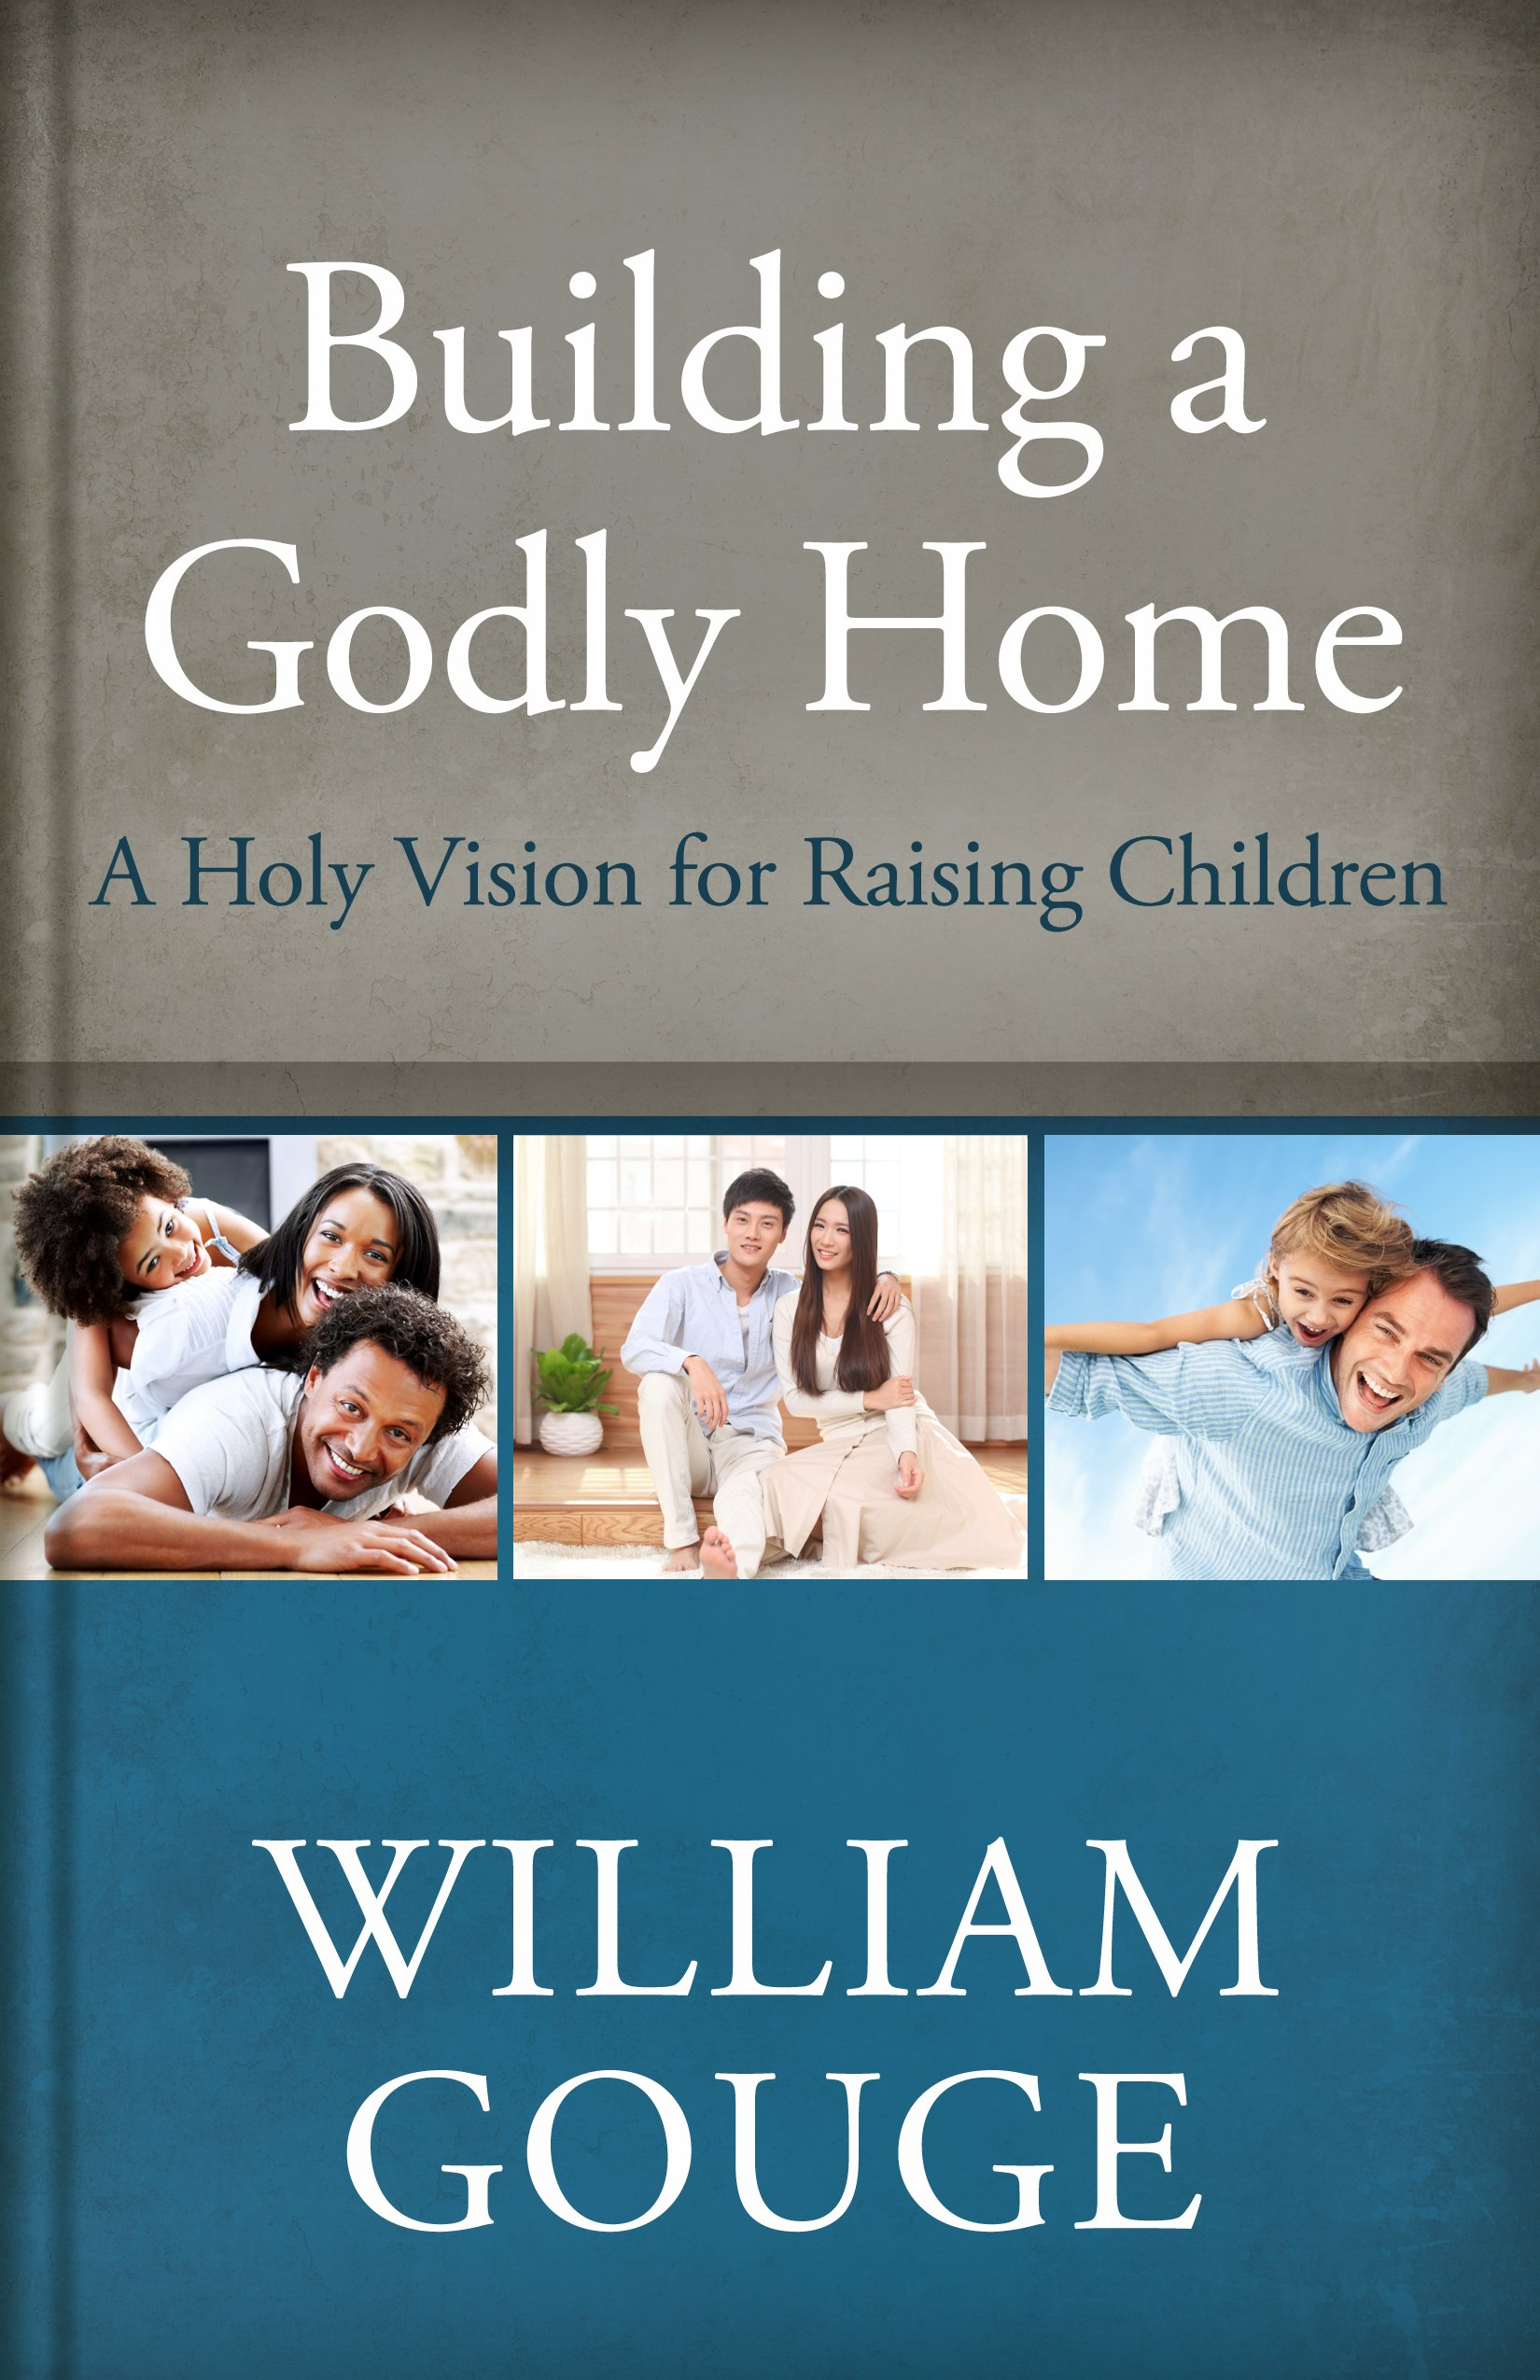 Download Building a Godly Home, Volume 3: A Holy Vision for Raising Children PDF